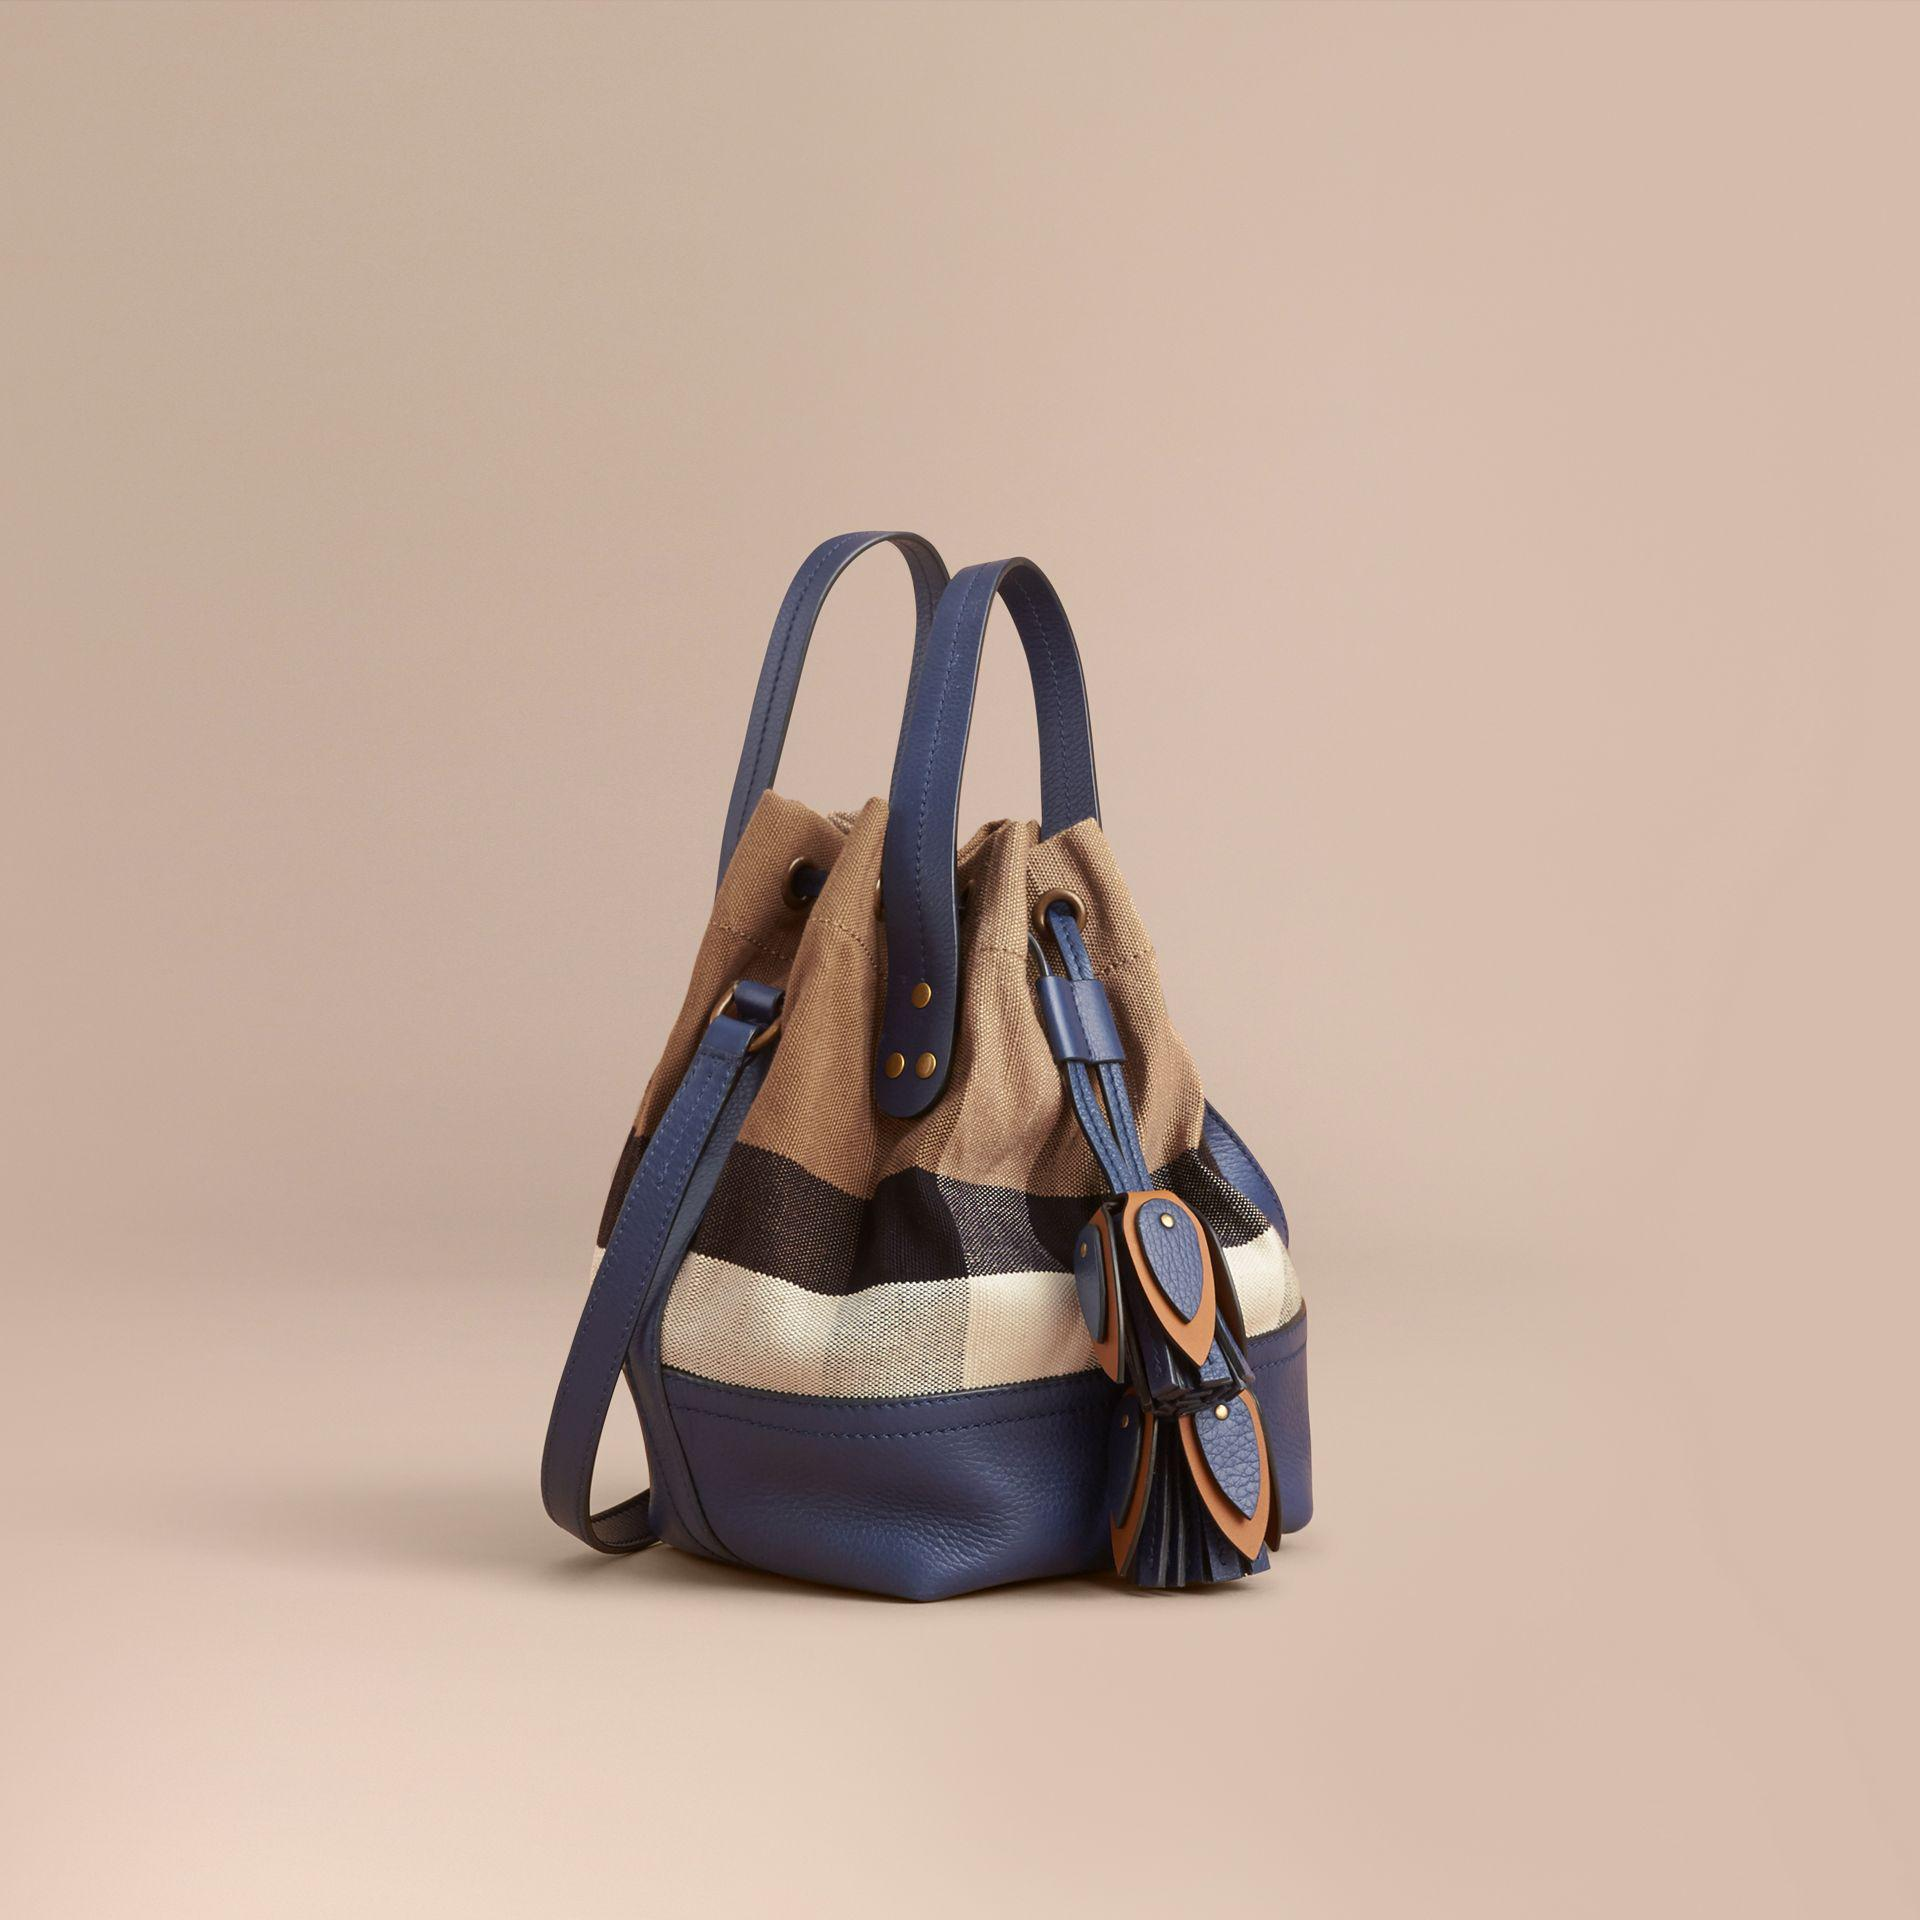 540fa8cd5d22 Lyst - Burberry Small Canvas Check And Leather Bucket Bag In ...